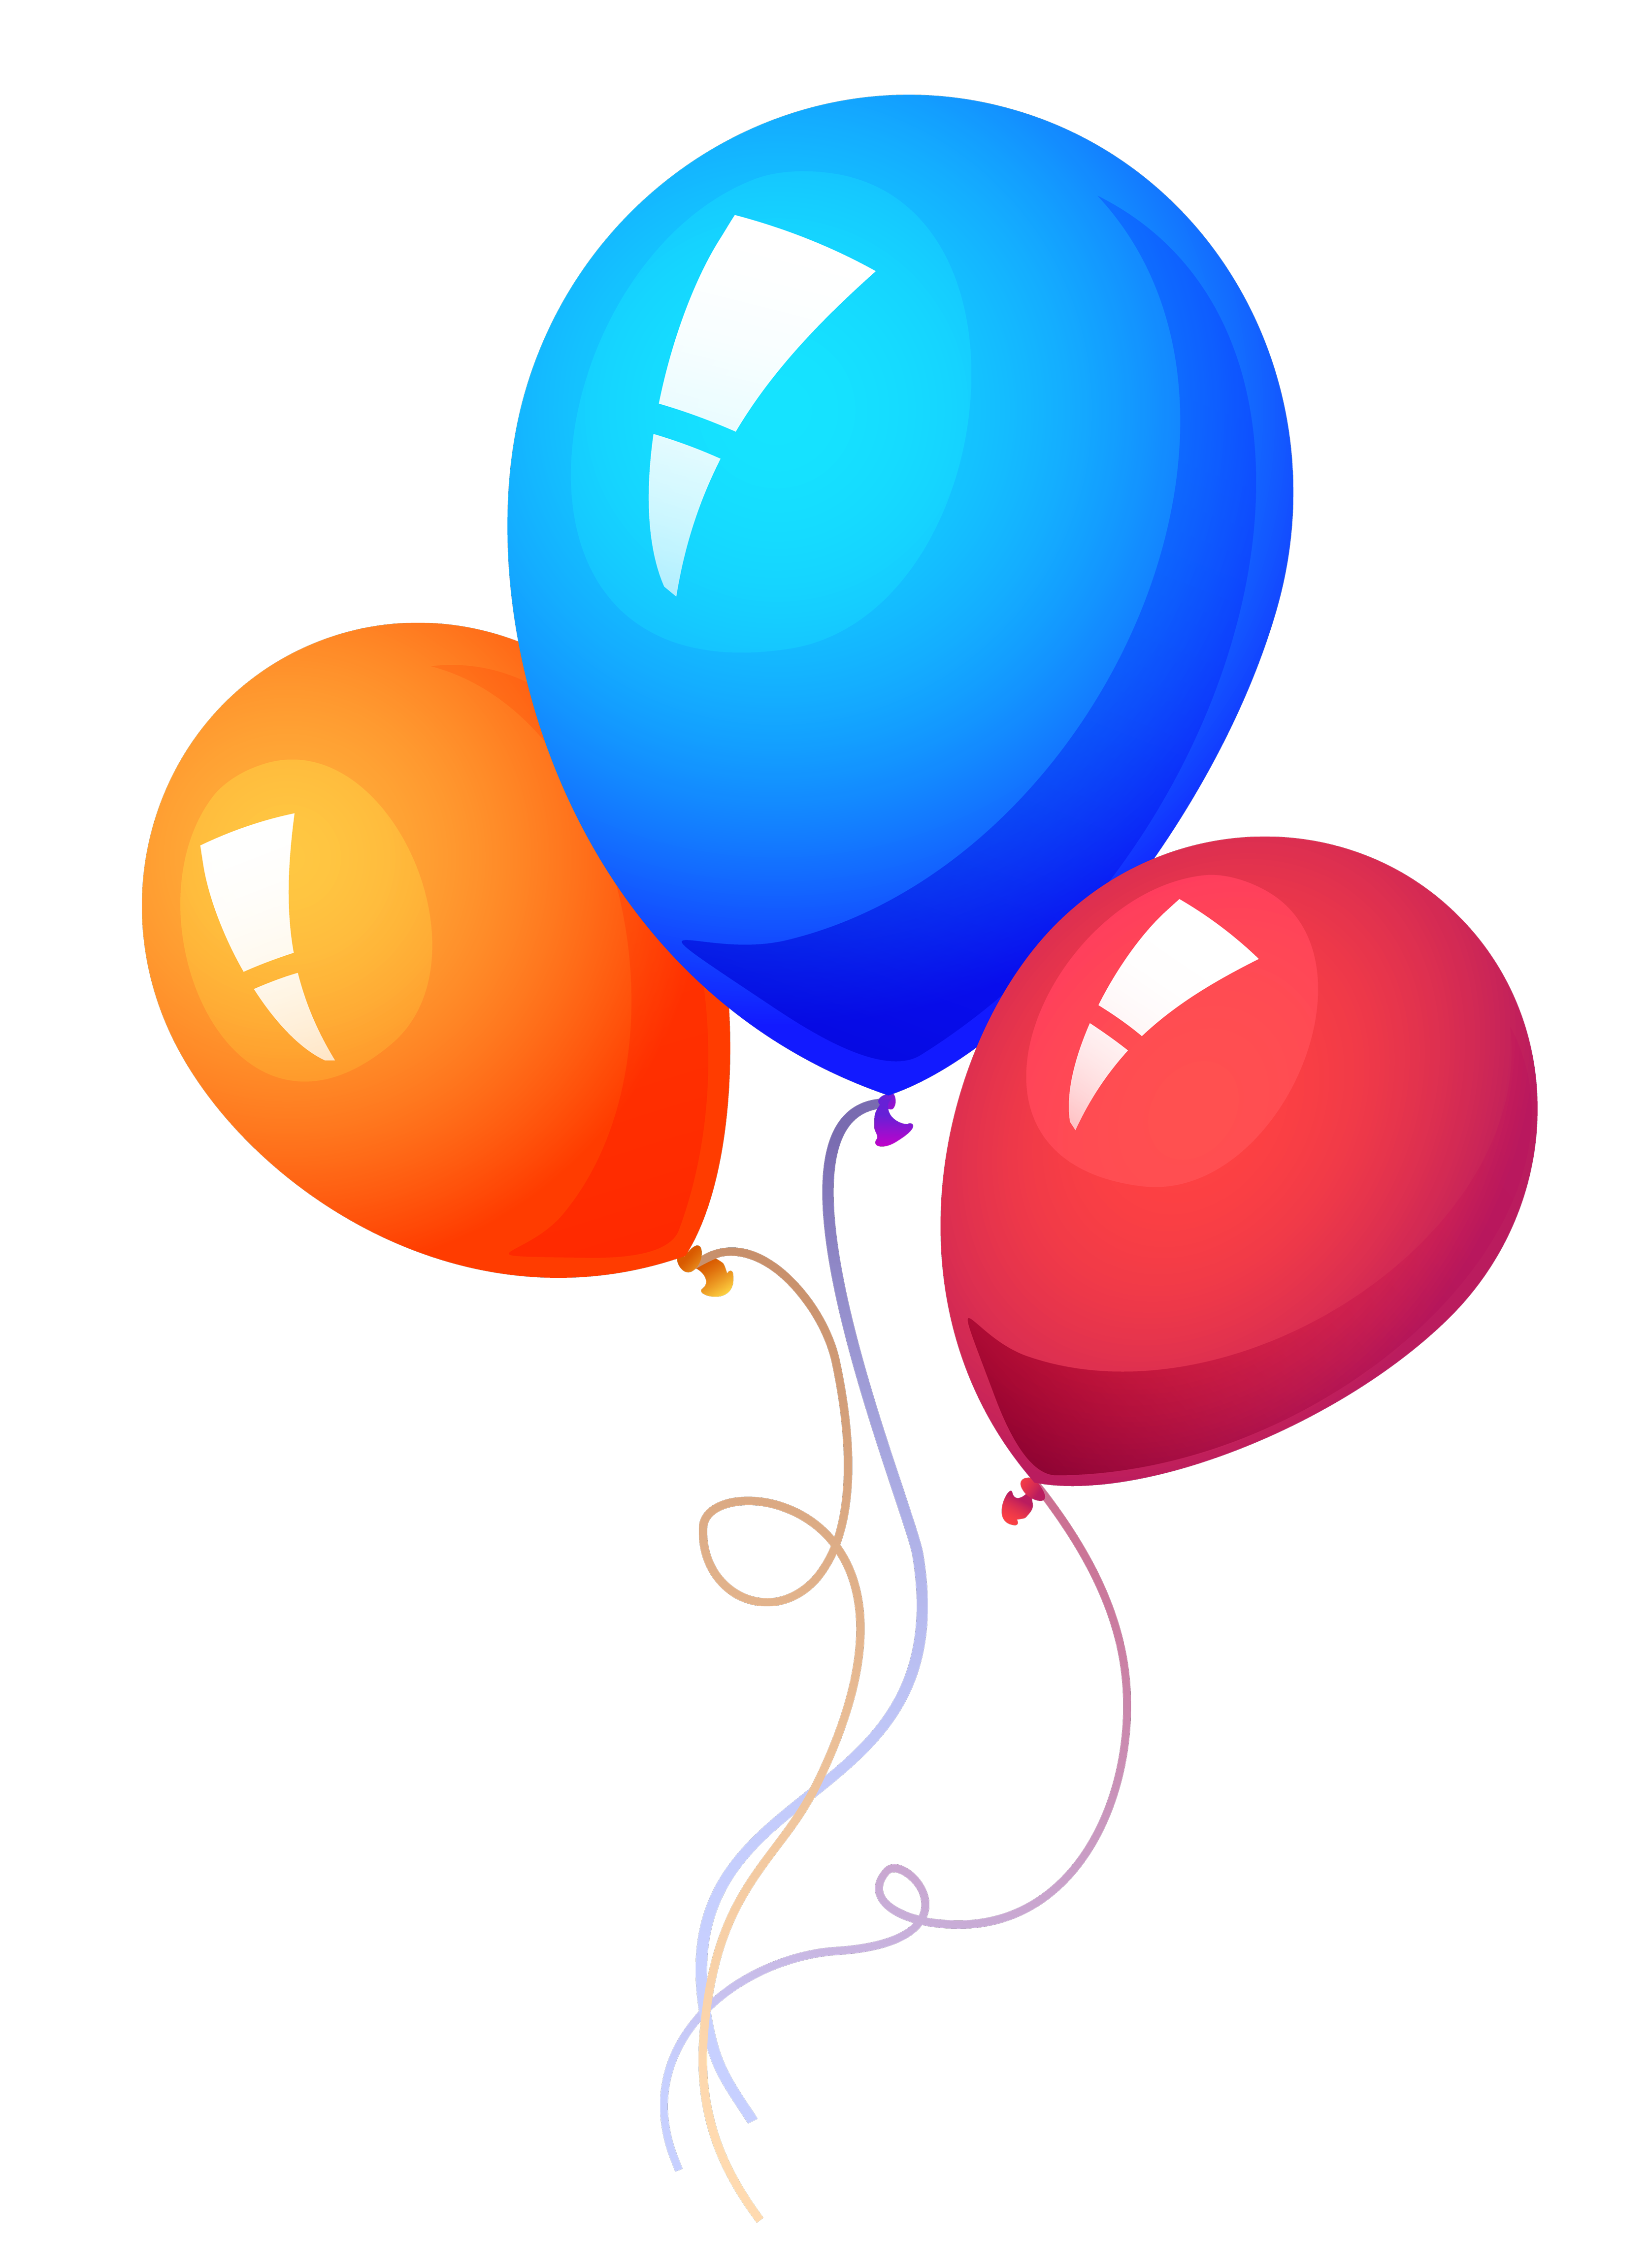 Grand opening balloons png. Party balloon image transparent